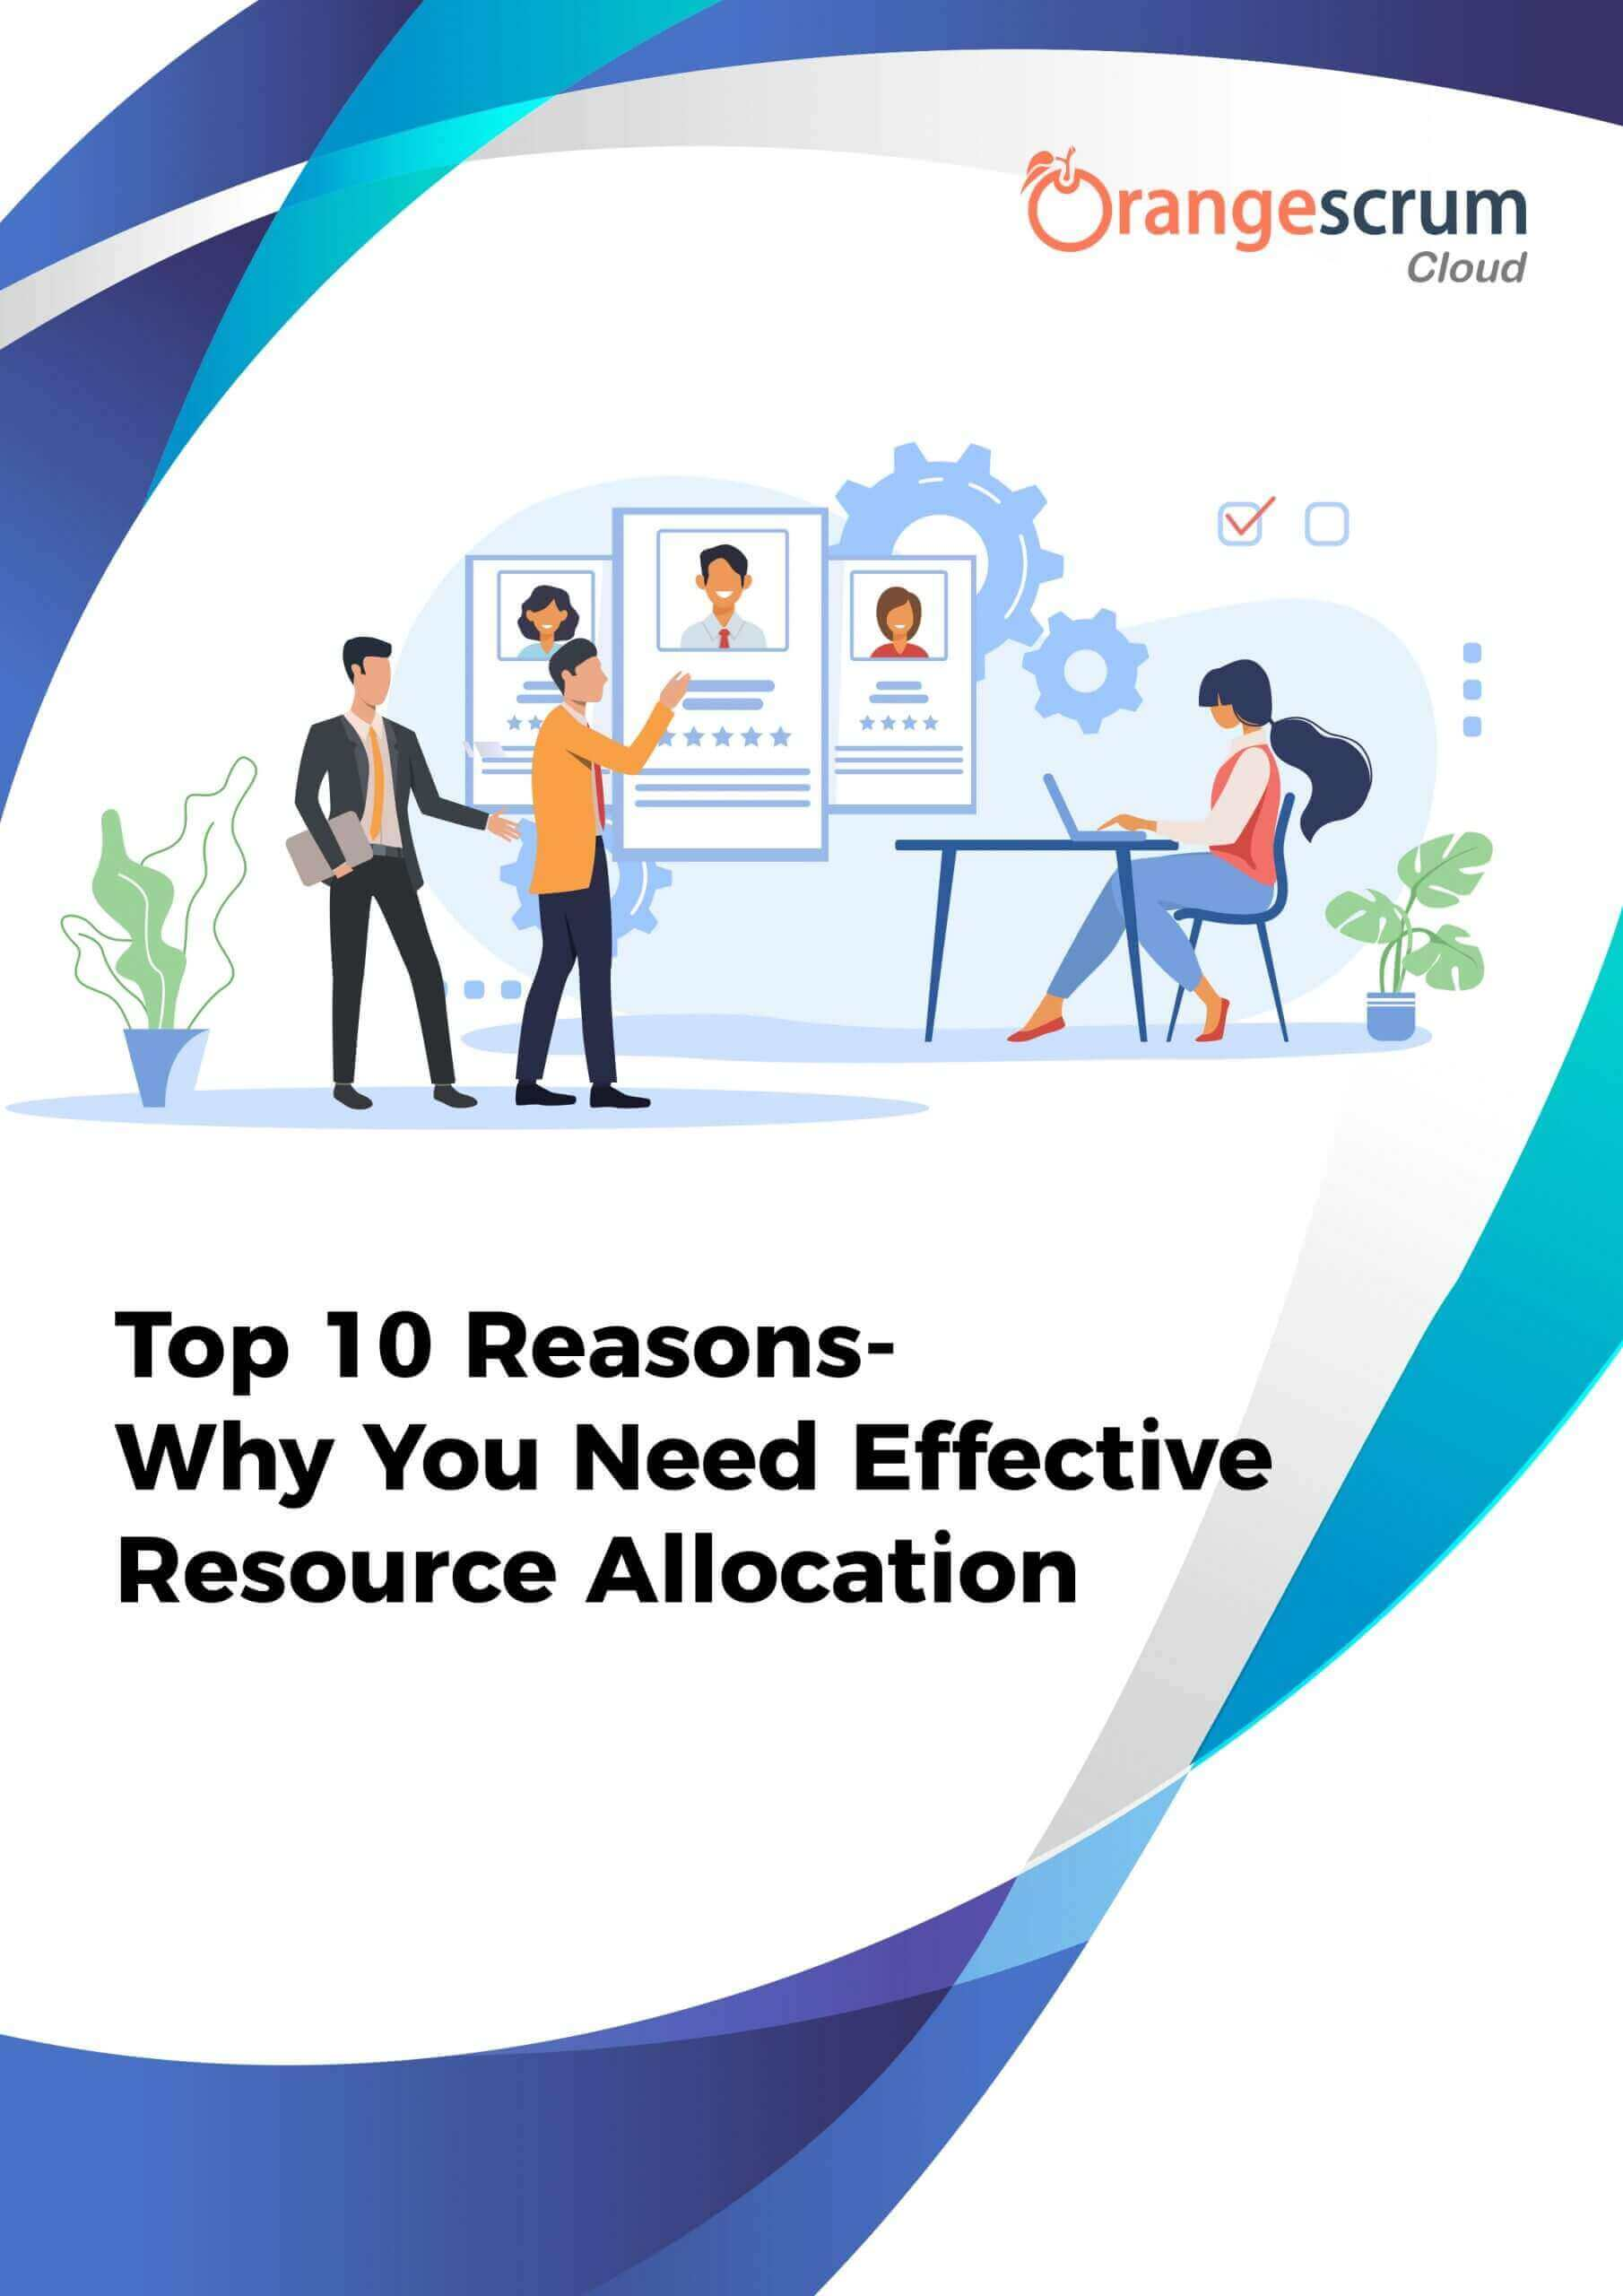 Top 10 Reasons- Why You Need Effective Resource Allocation